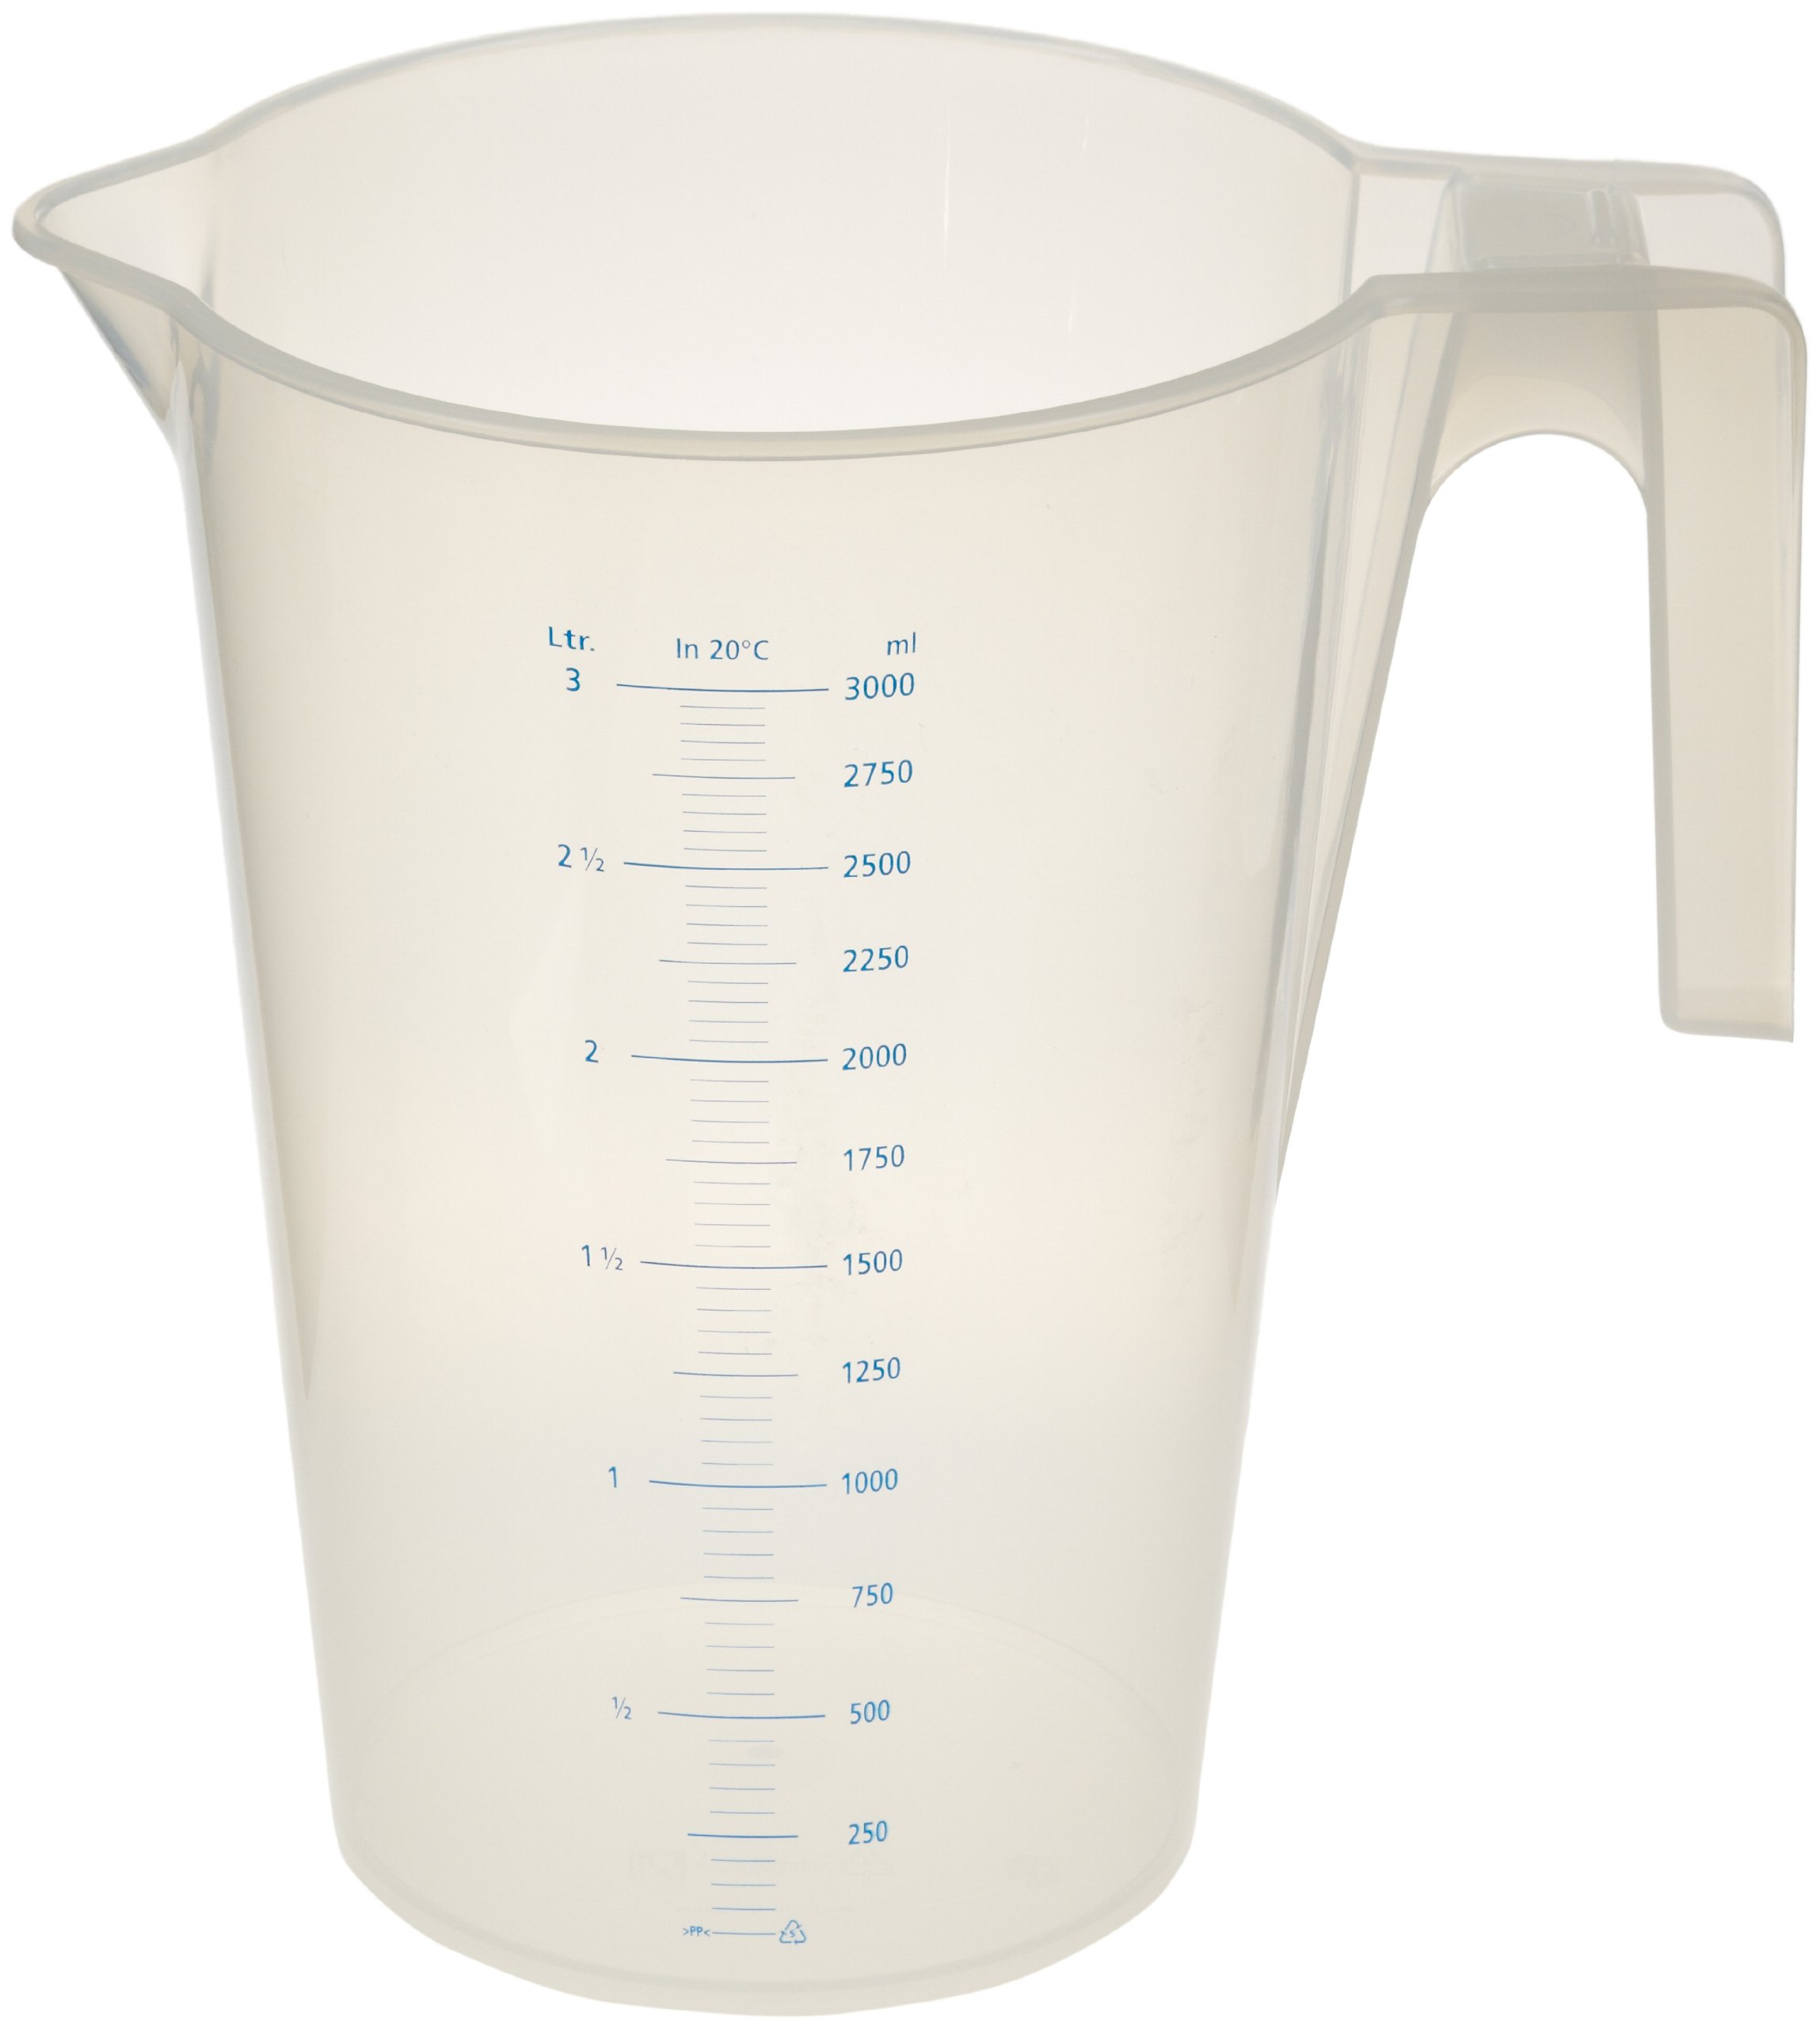 Vitlab Polypropylene Graduated Pitcher, Nesting, 3000mL Capacity (Pack of 12)